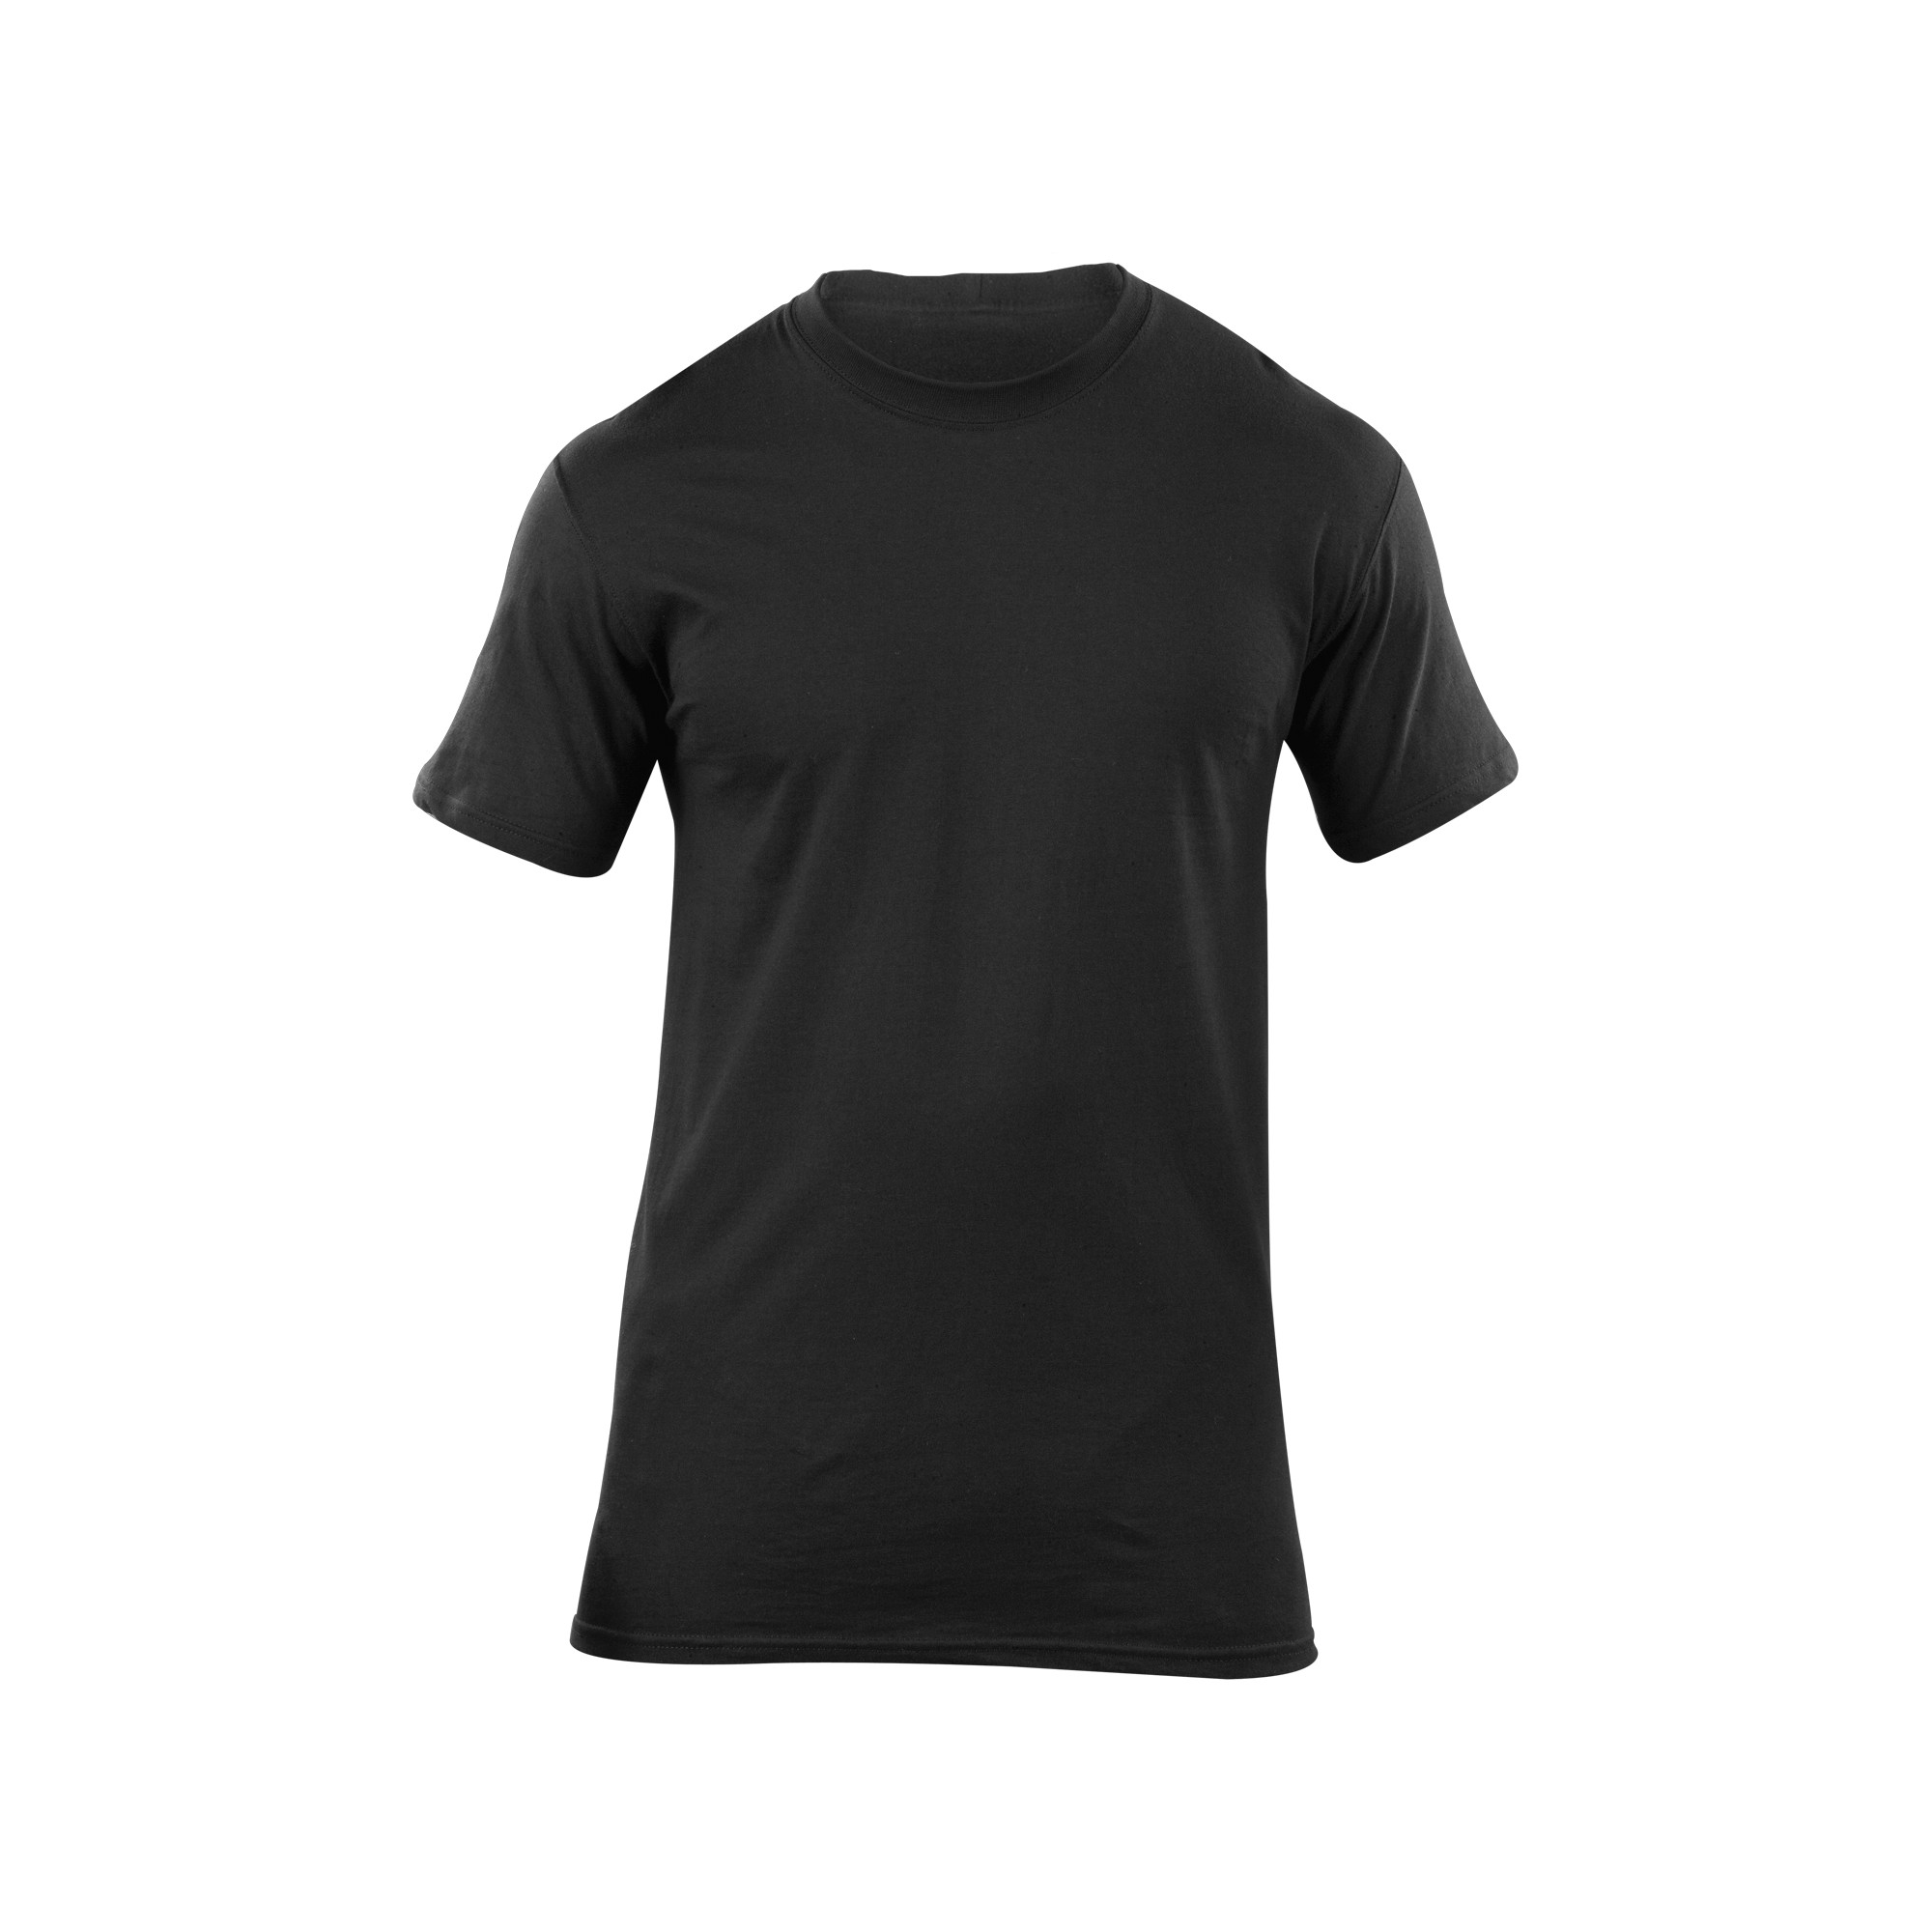 5.11 Mens 3 pack Utili-T Crew Shirt 40016